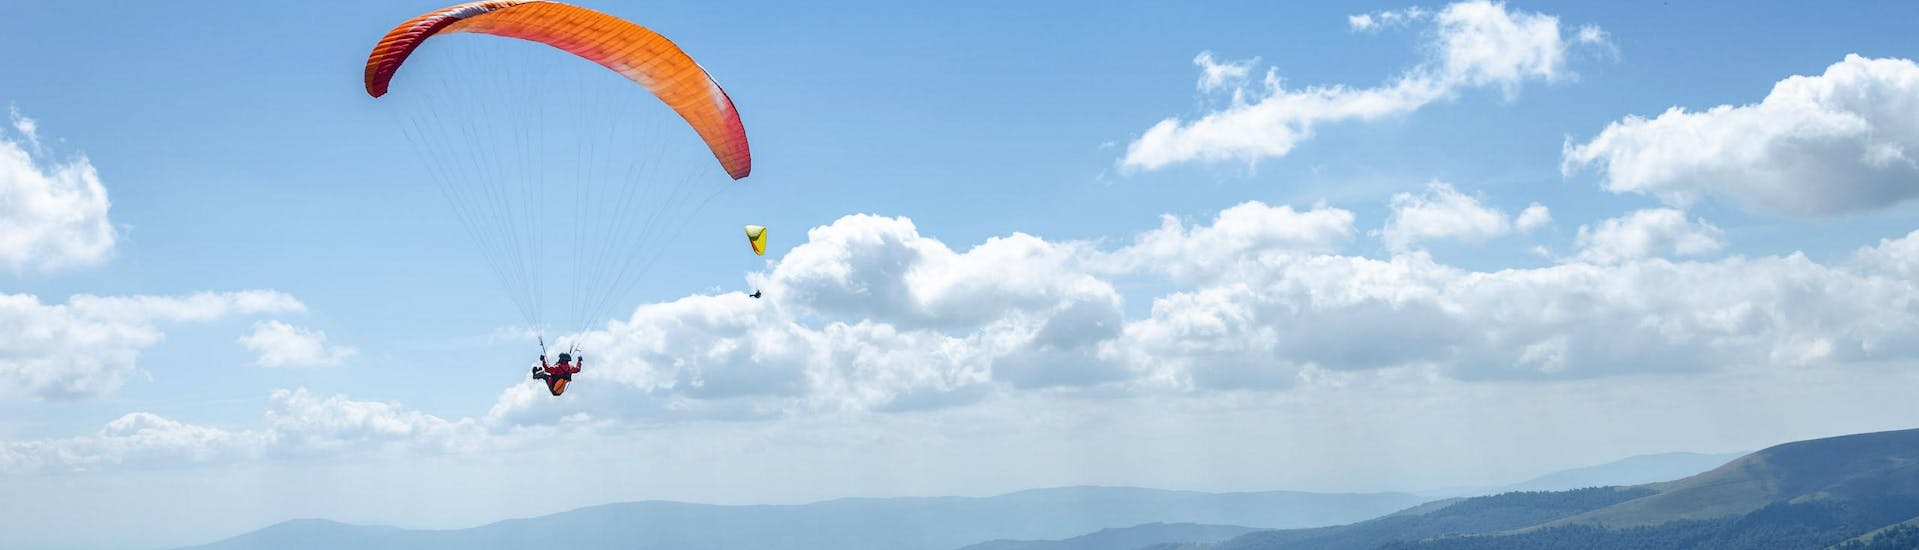 Tandem Paragliding in Kössen - Long-Distance Flight